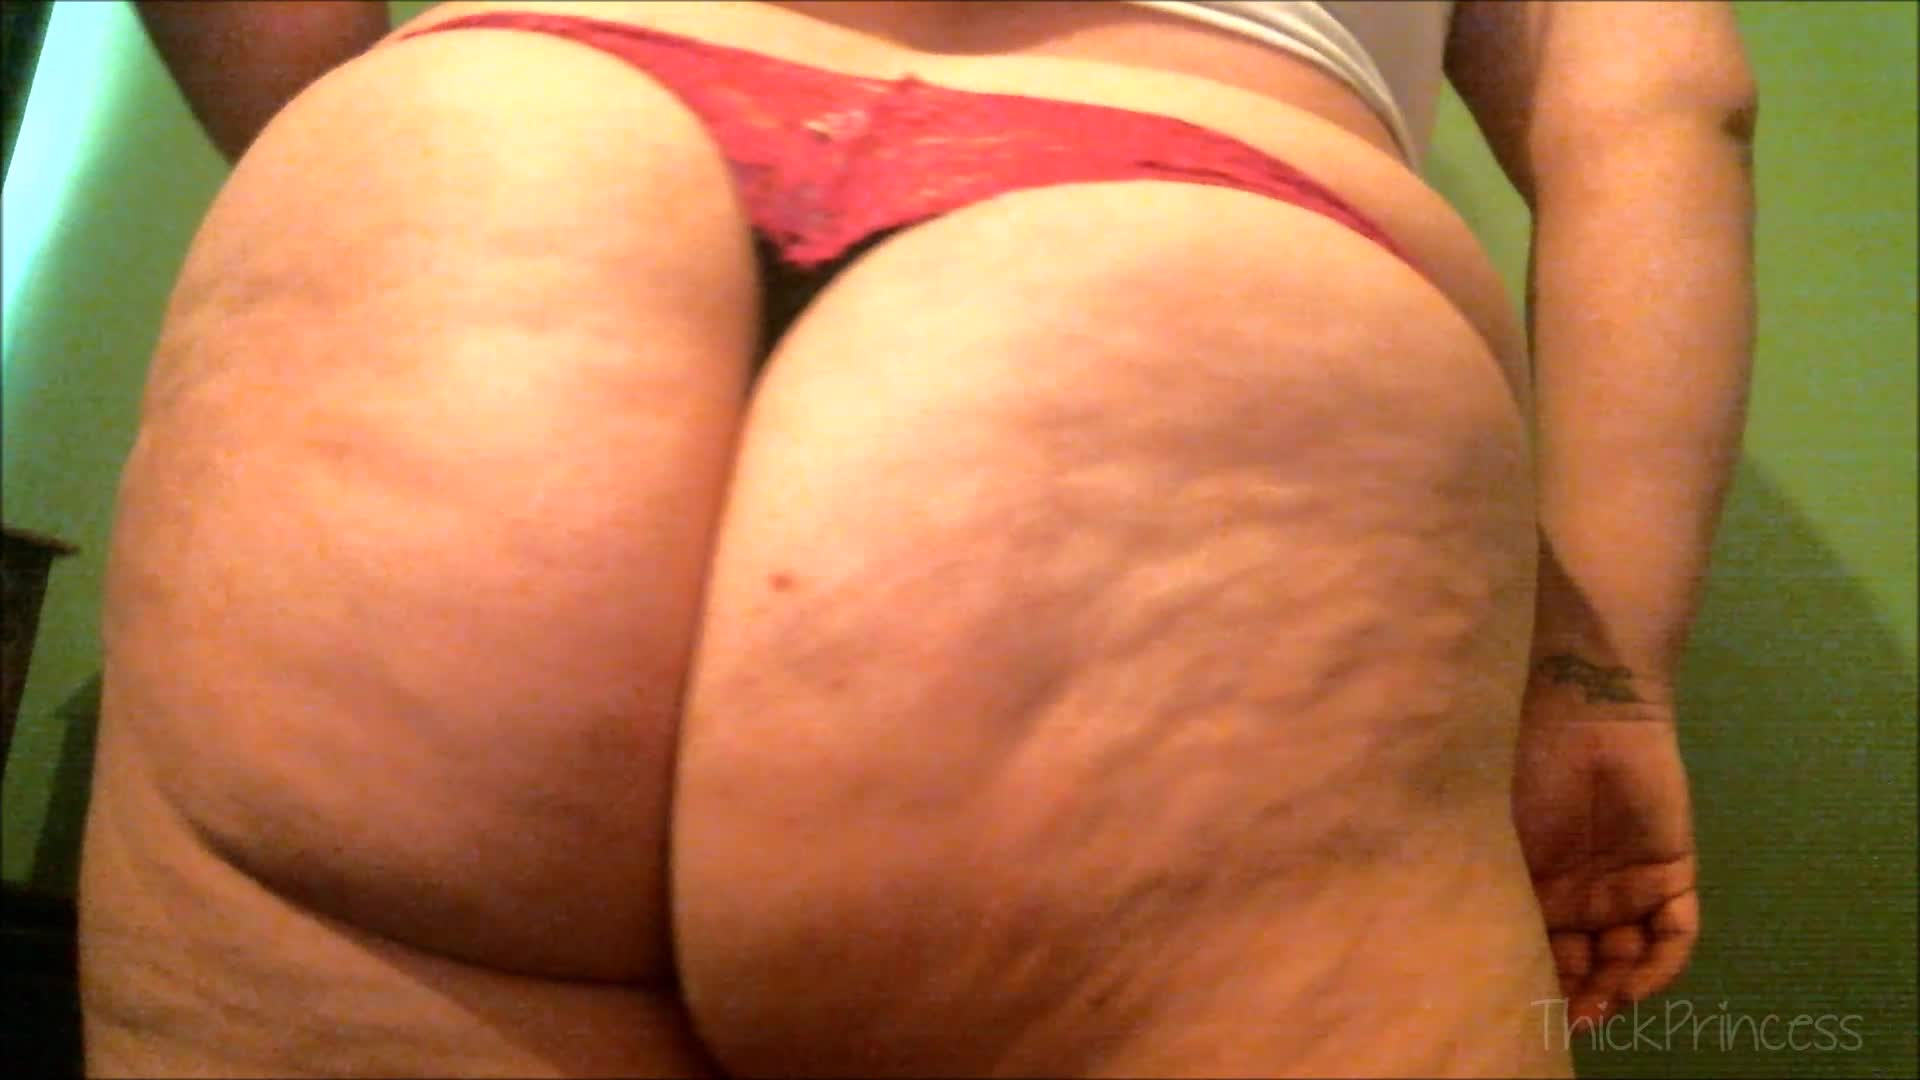 ThickPrincess'd vid